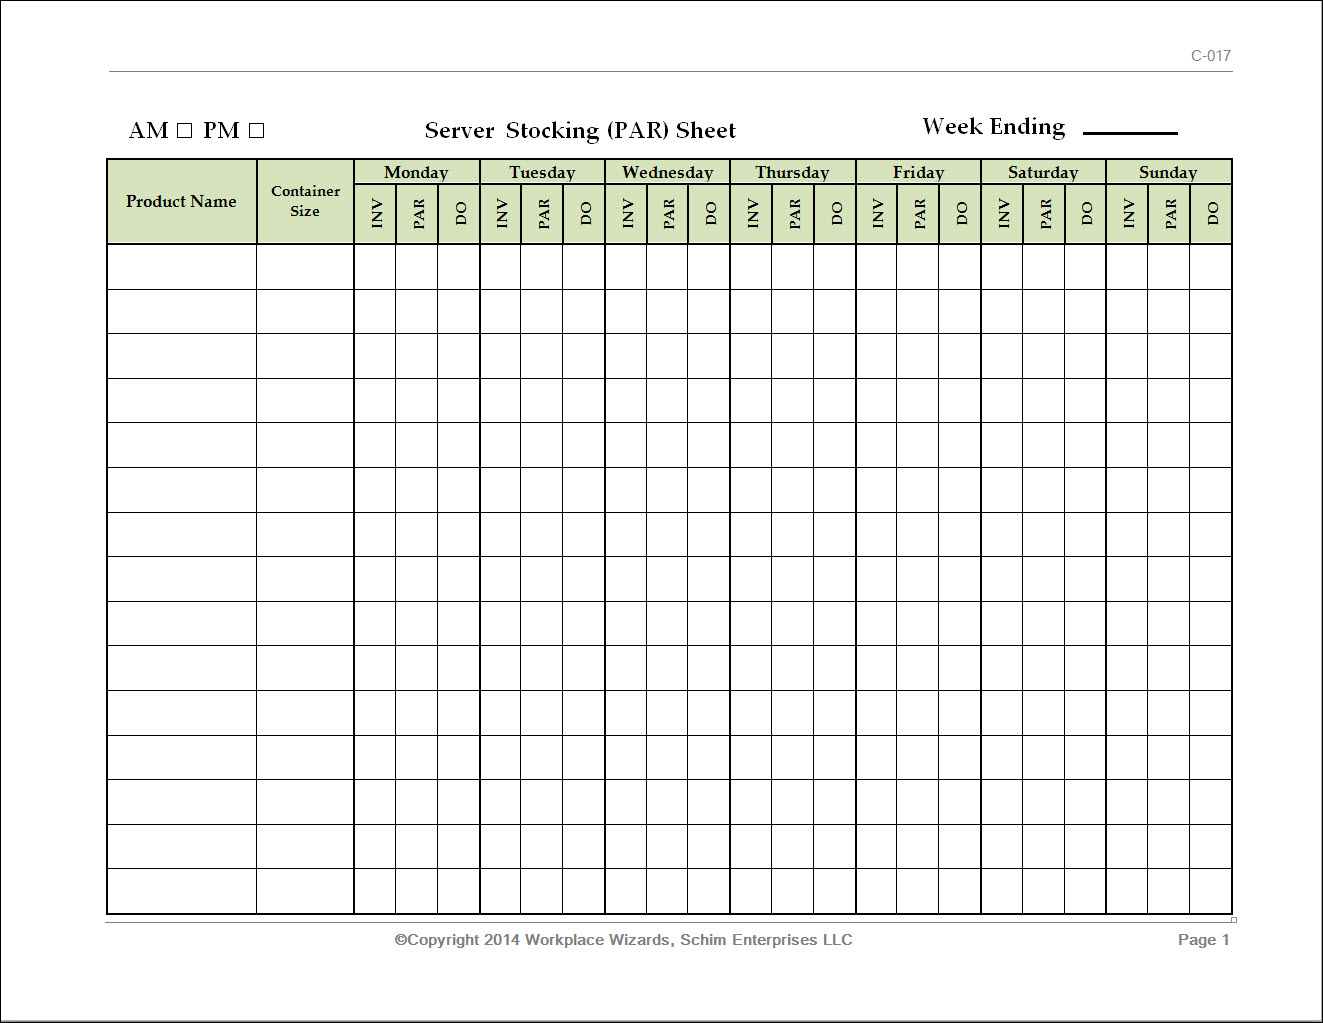 Restaurant Costs Spreadsheet With Free Restaurant Startup Costs Spreadsheet  Homebiz4U2Profit